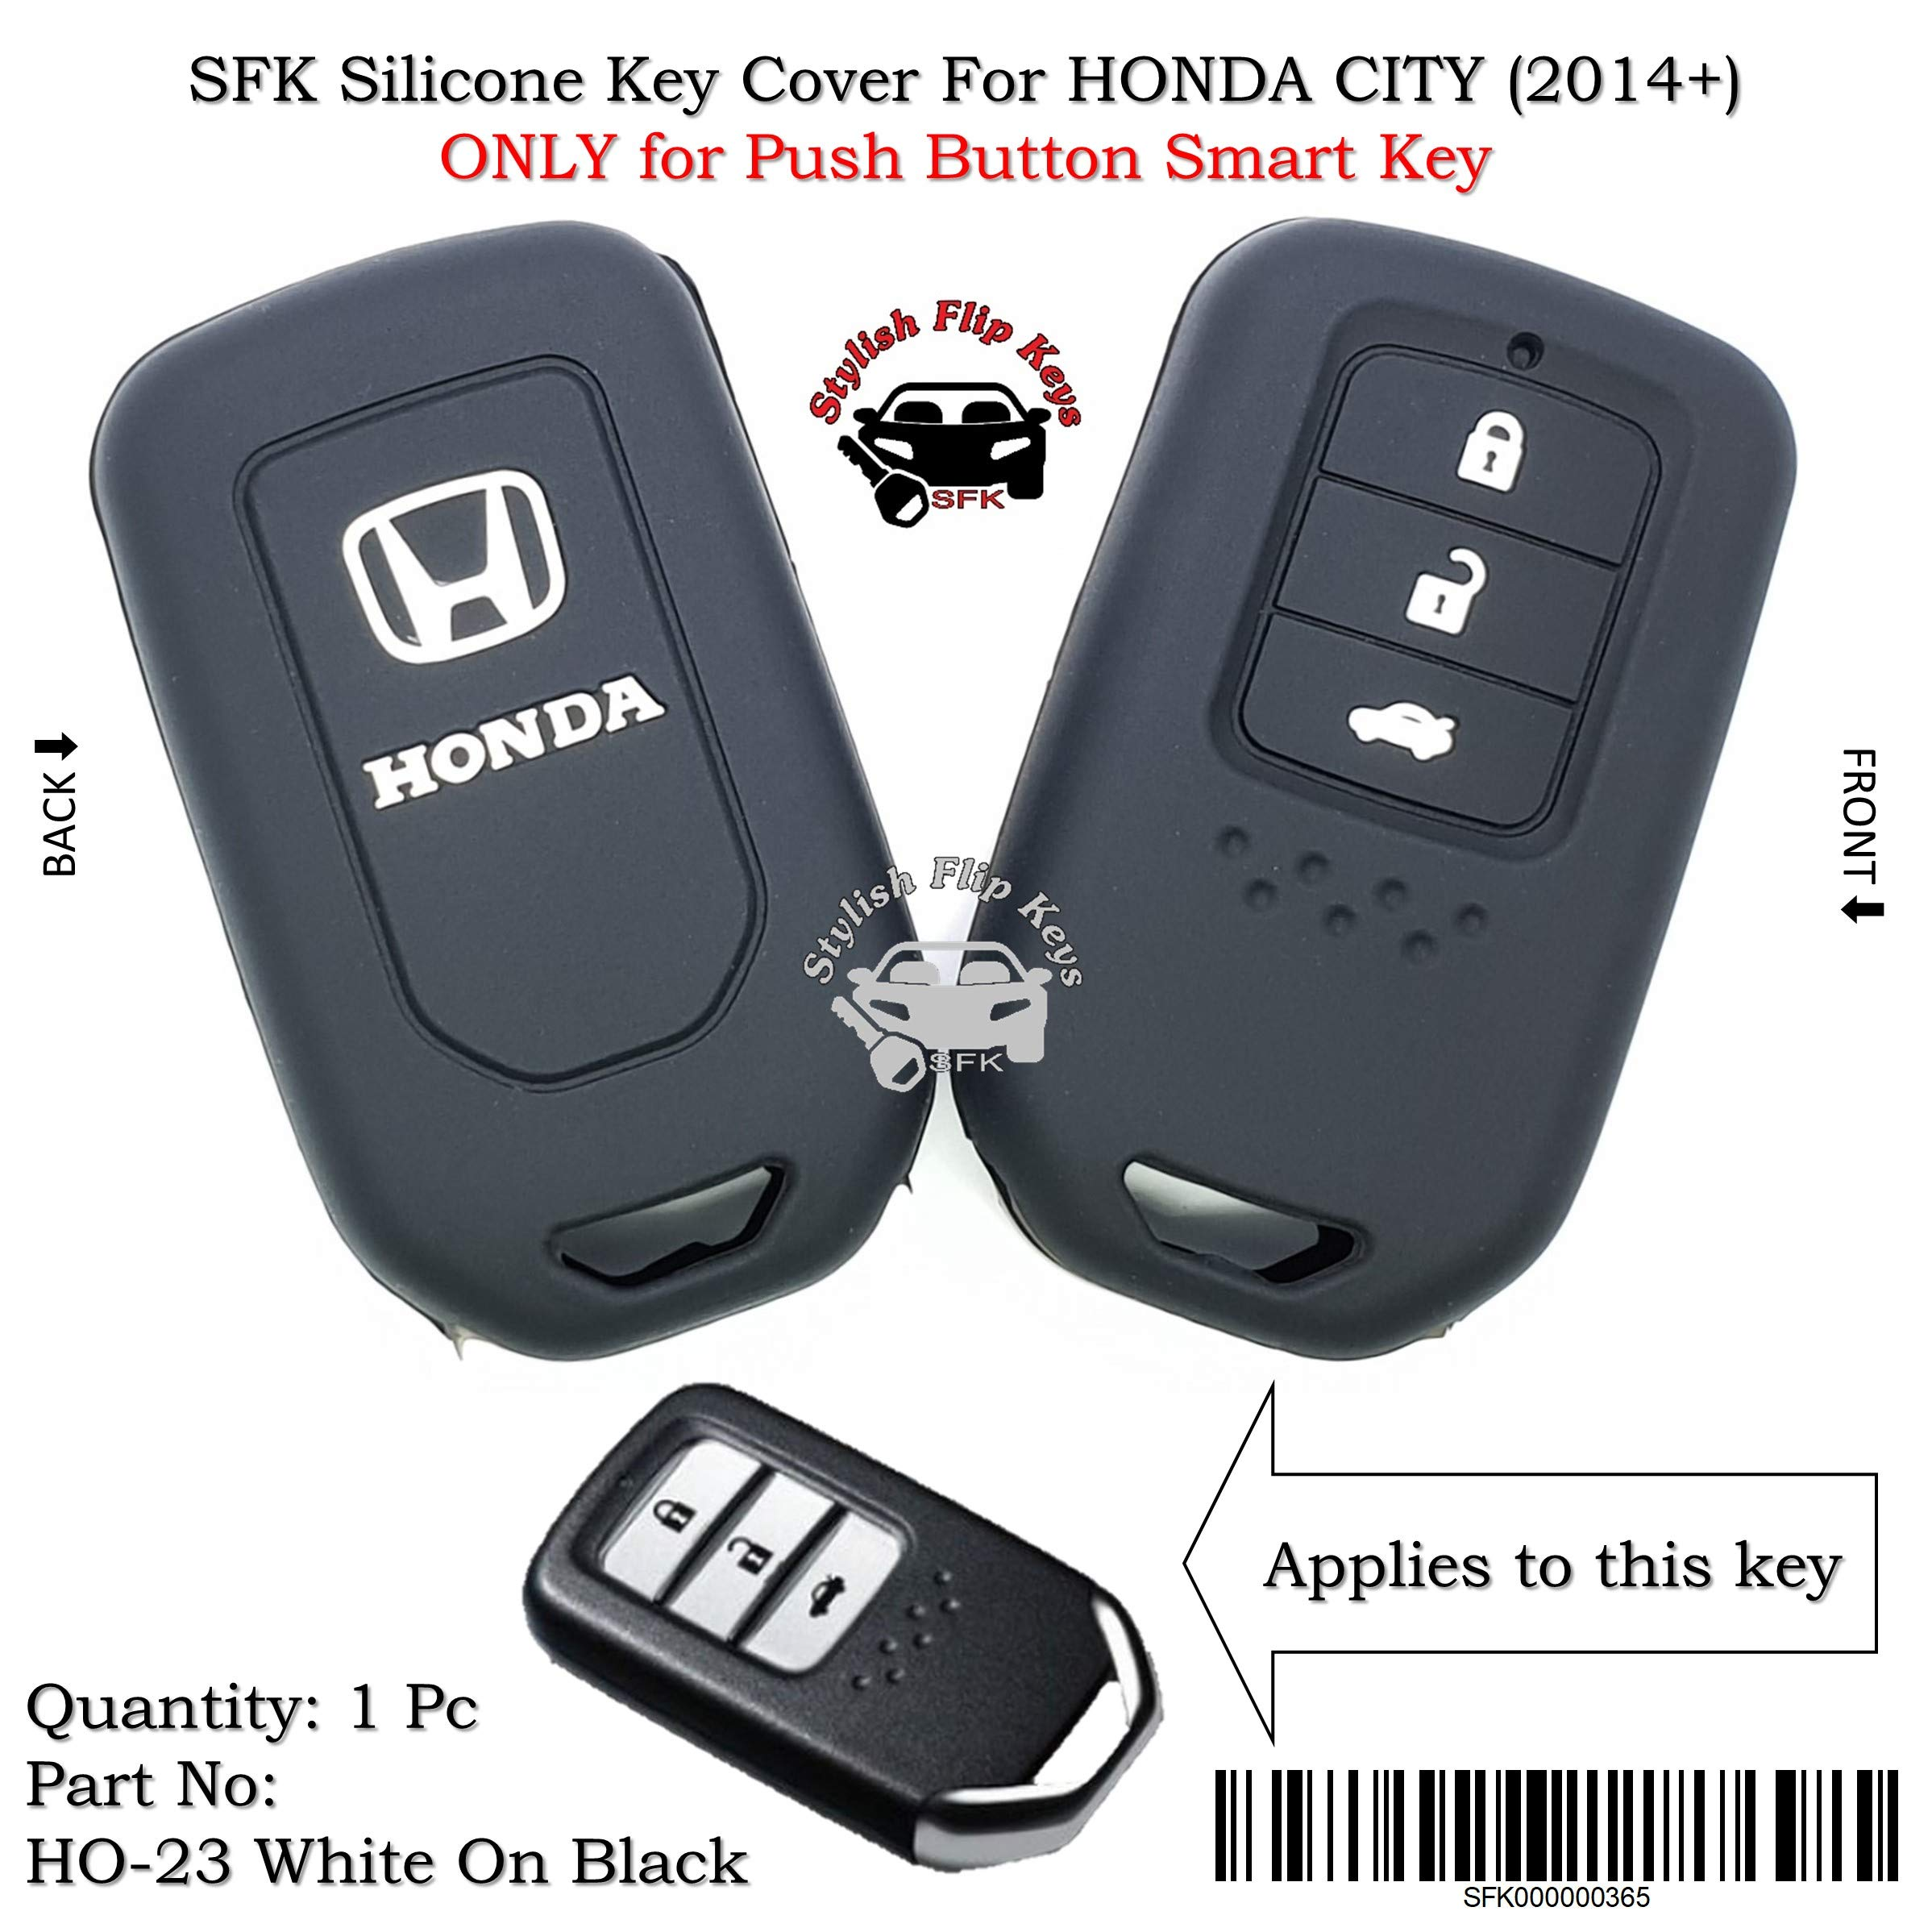 SFK Silicone Smart Key Cover Honda City (2014+) (Only for Push Button Start Models) product image